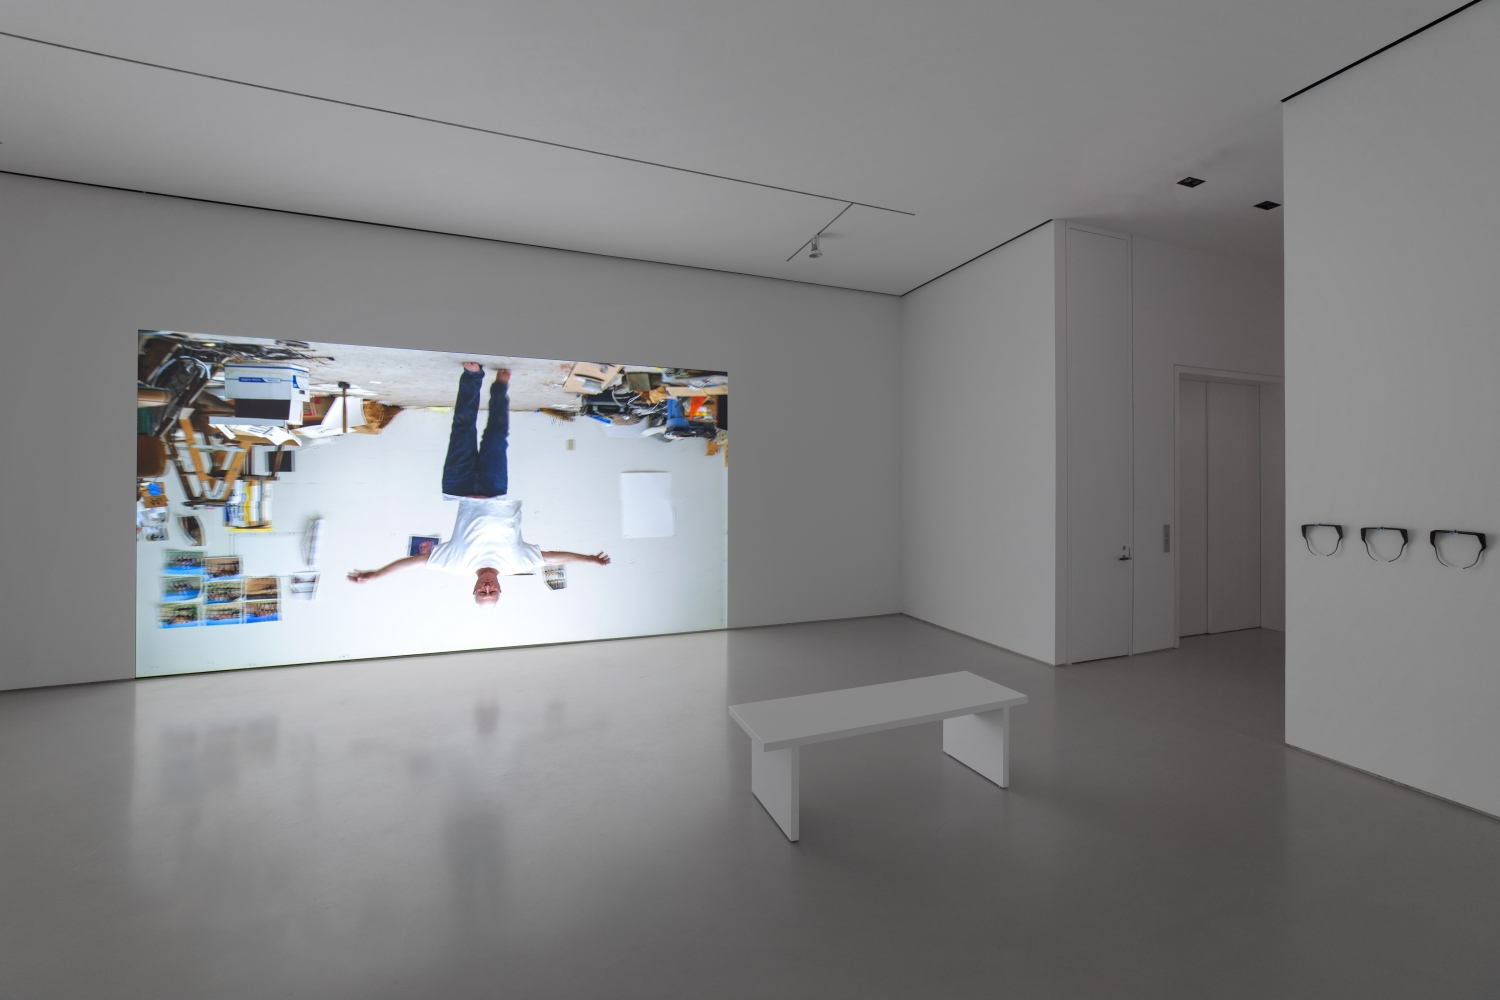 gallery installation view showing a projection of an upside down man walking with arms outstretched